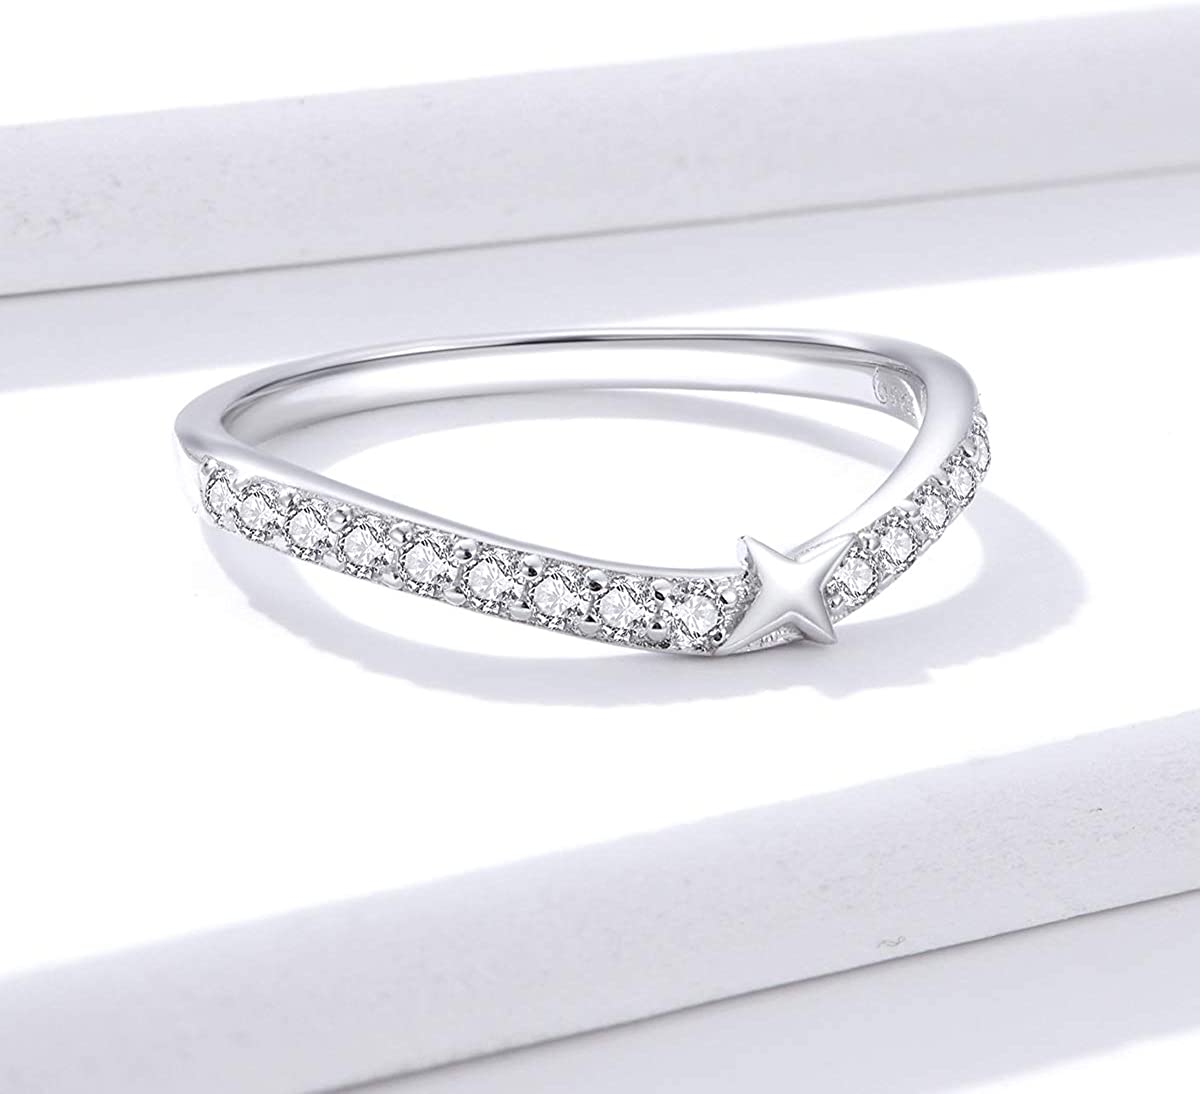 BAMOER Wishbone Star Ring for Women Sterling Silver Sparkling Cubic Zirconia Engagement Band Ring for Women Girls Size 6-8